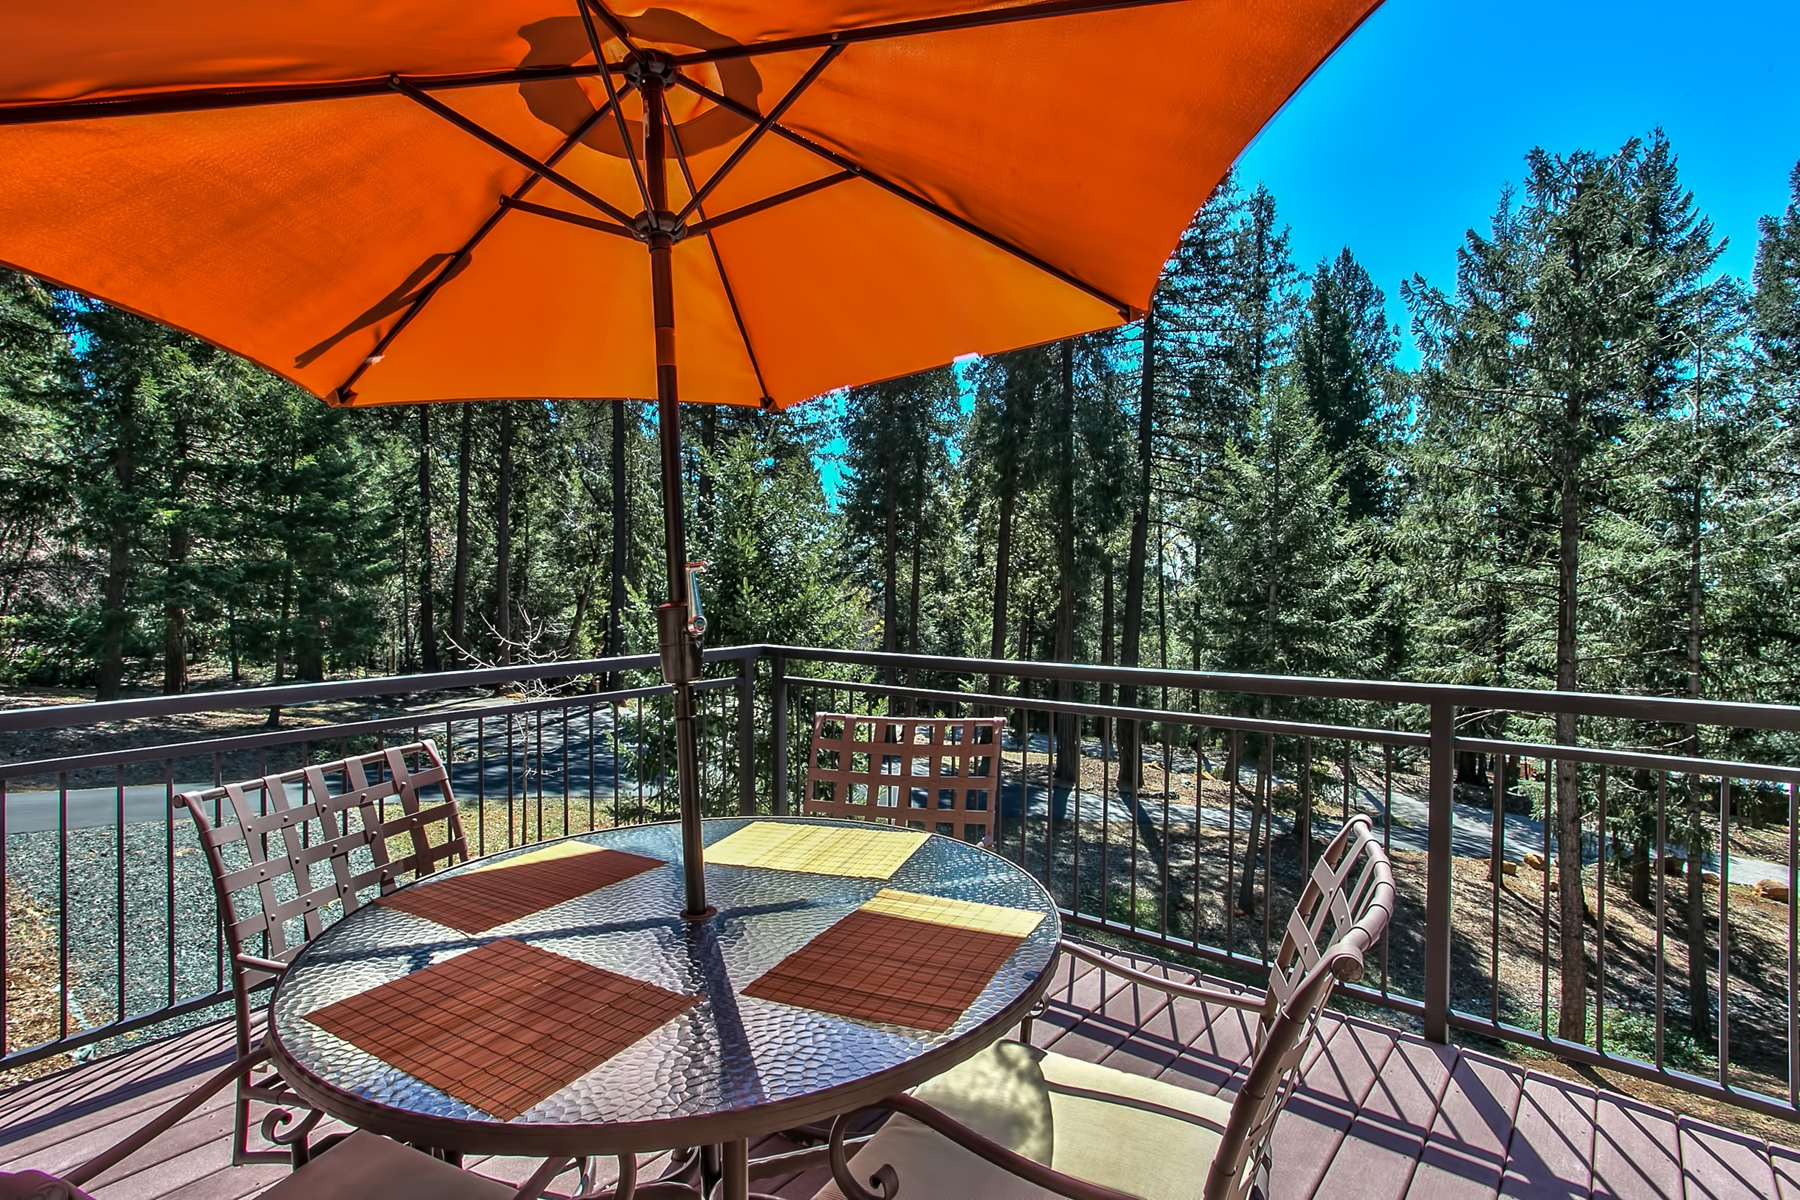 Additional photo for property listing at 11627 Caroline Lane 11627 Caroline Lane Nevada City, California 95959 United States